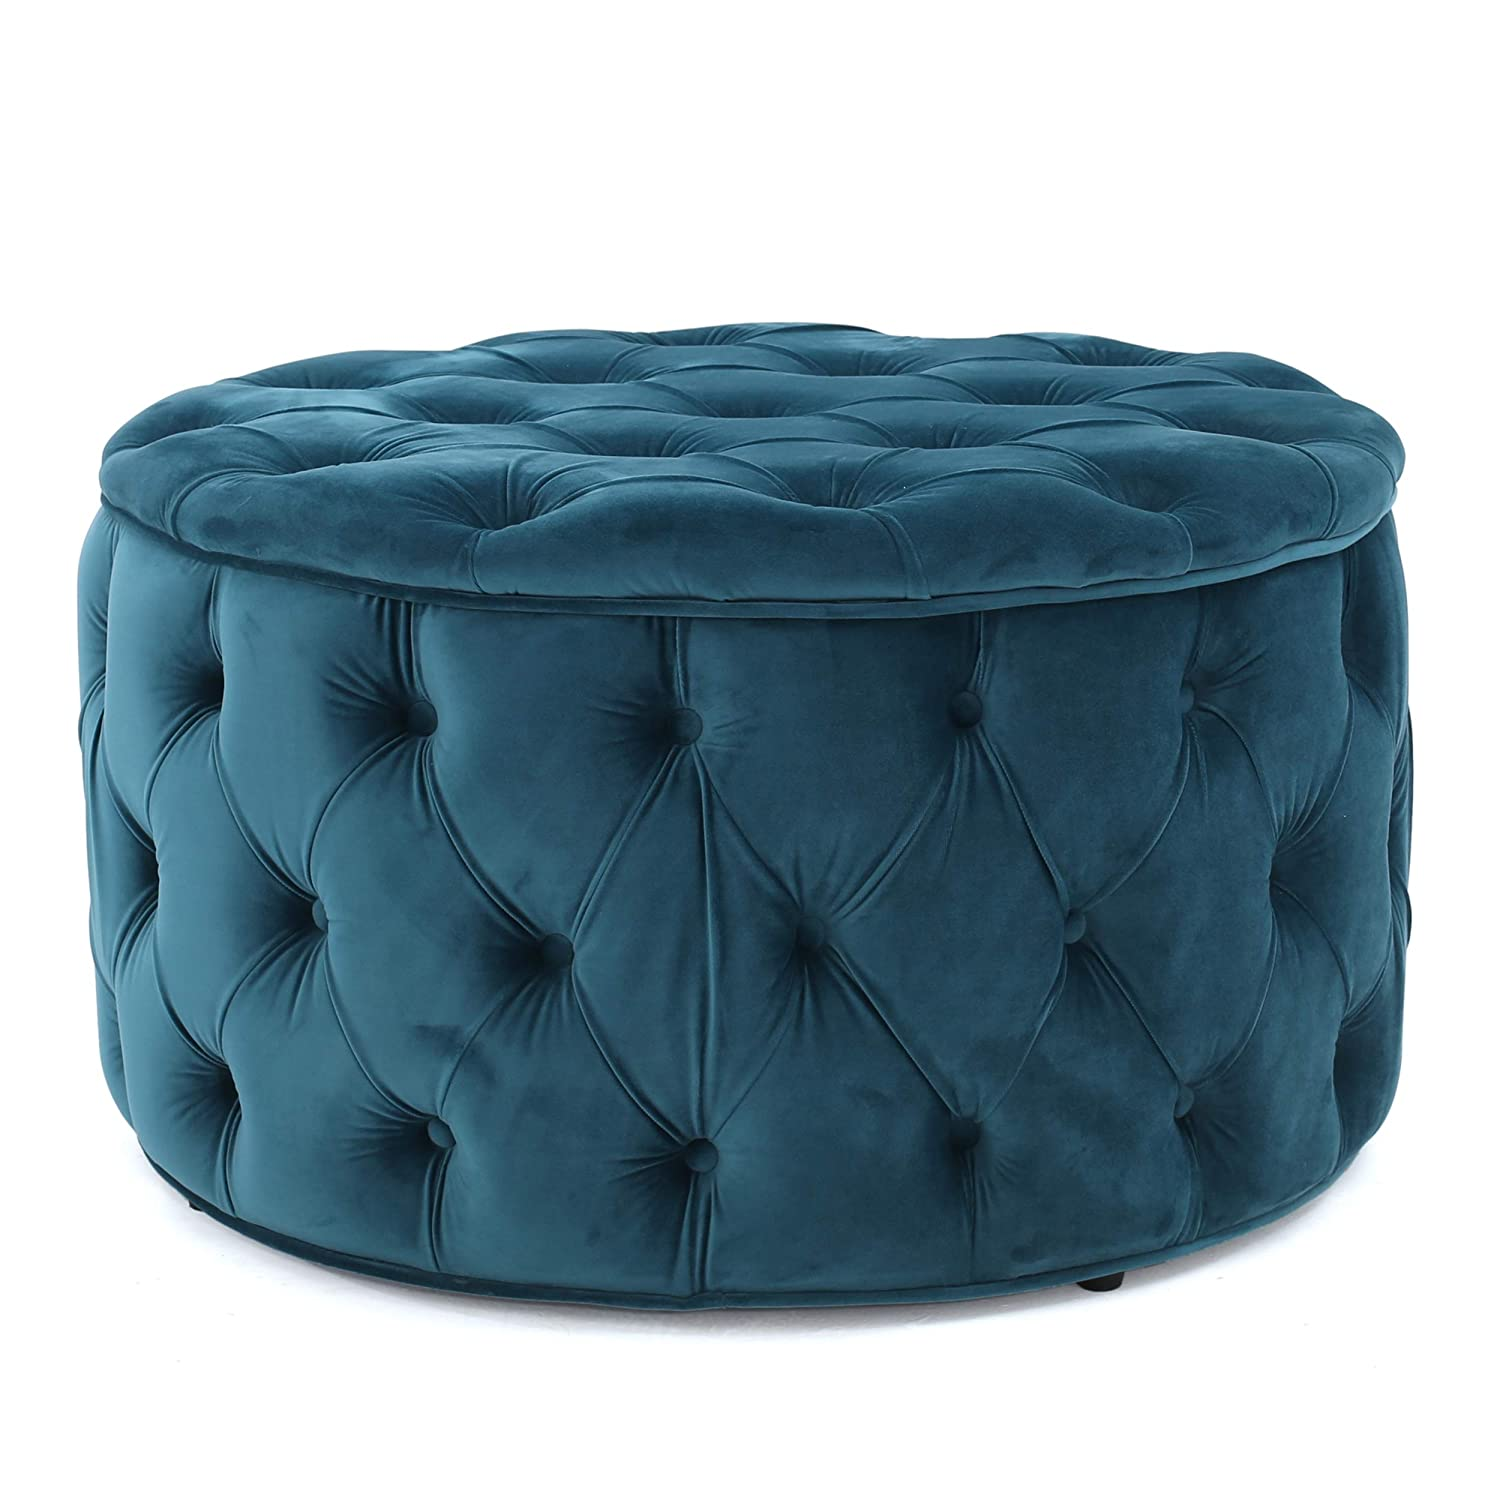 Great Deal Furniture Maelyn Teal Velvet Ottoman